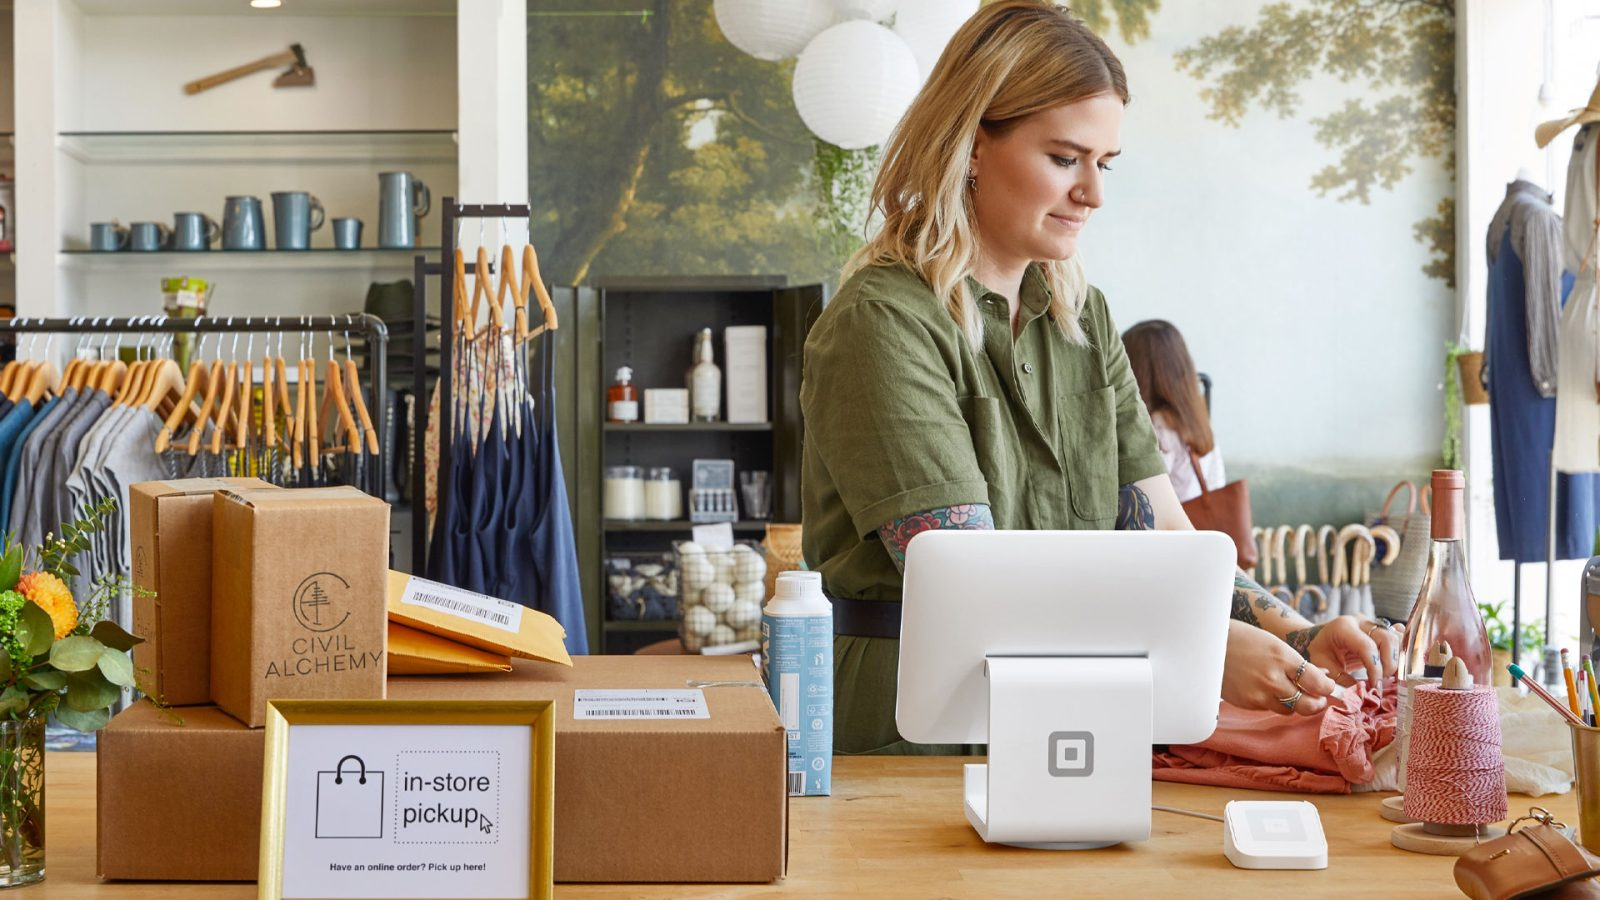 Start your business with a Square Stand + Apple Pay reader at $120 (Reg. $170)